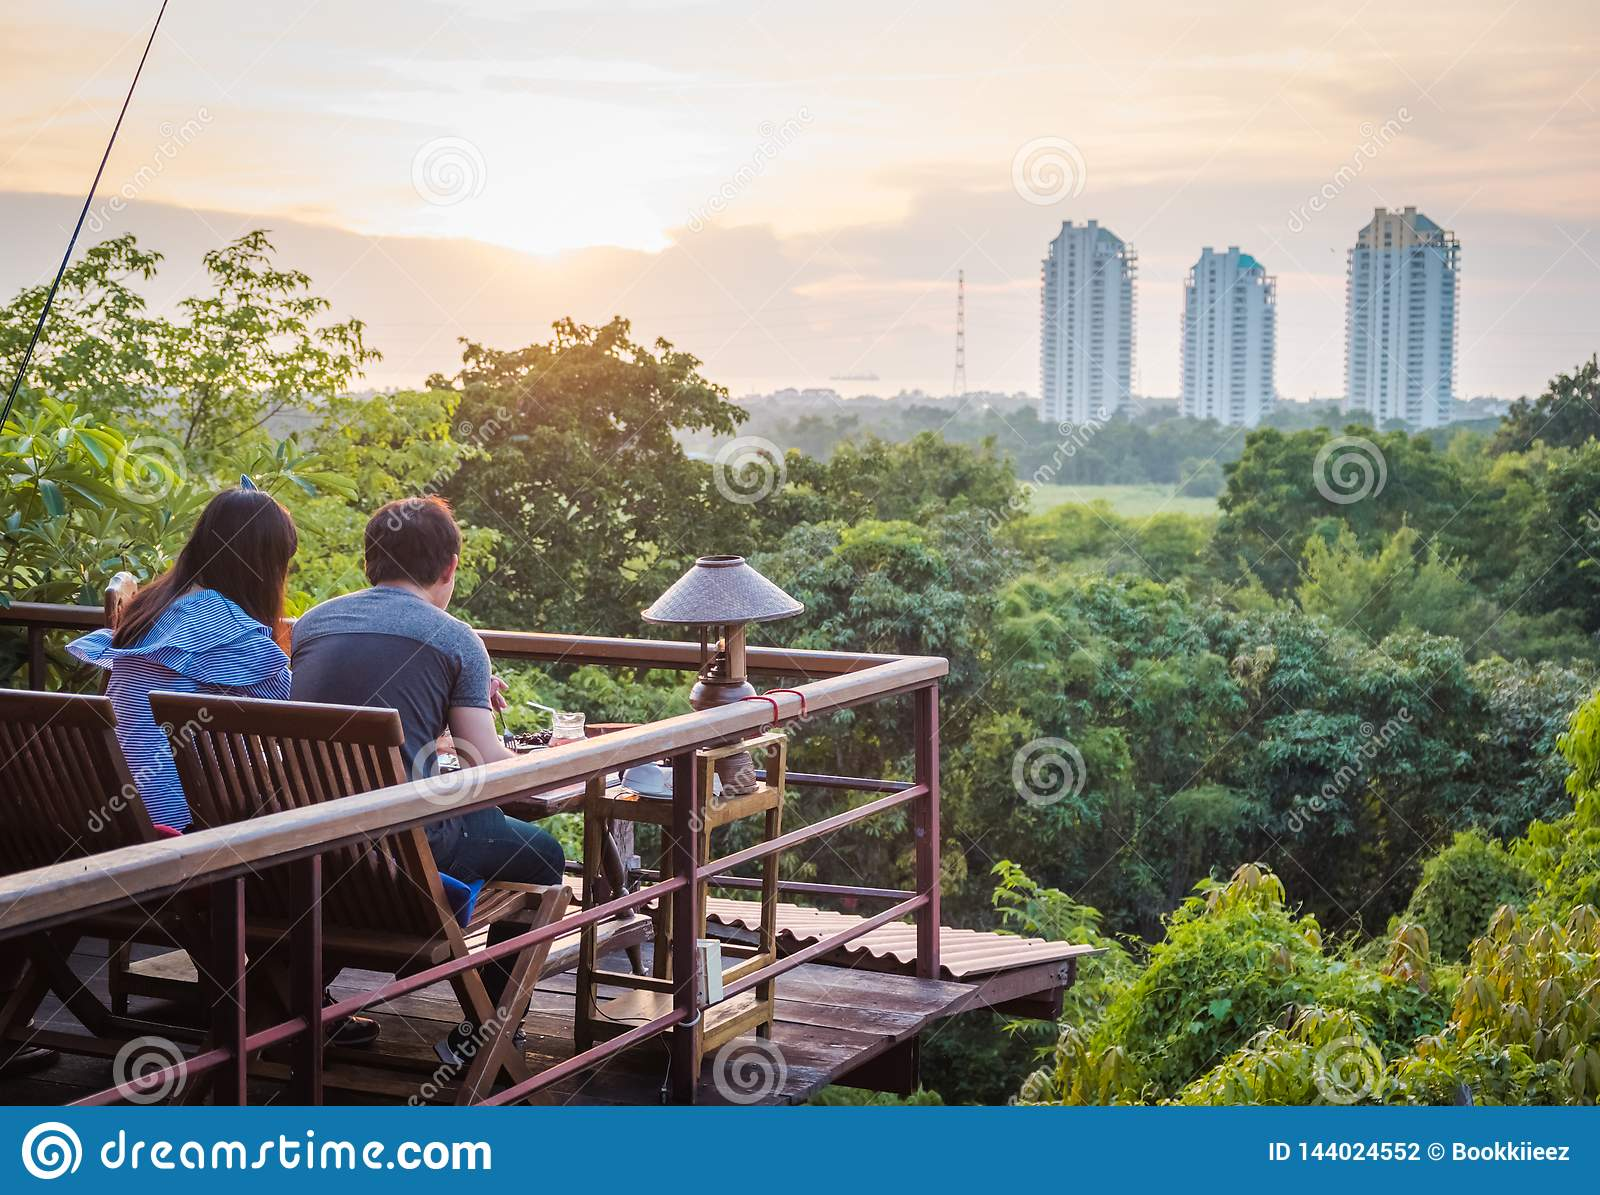 A couple dinning in front of the forest and the buildings.